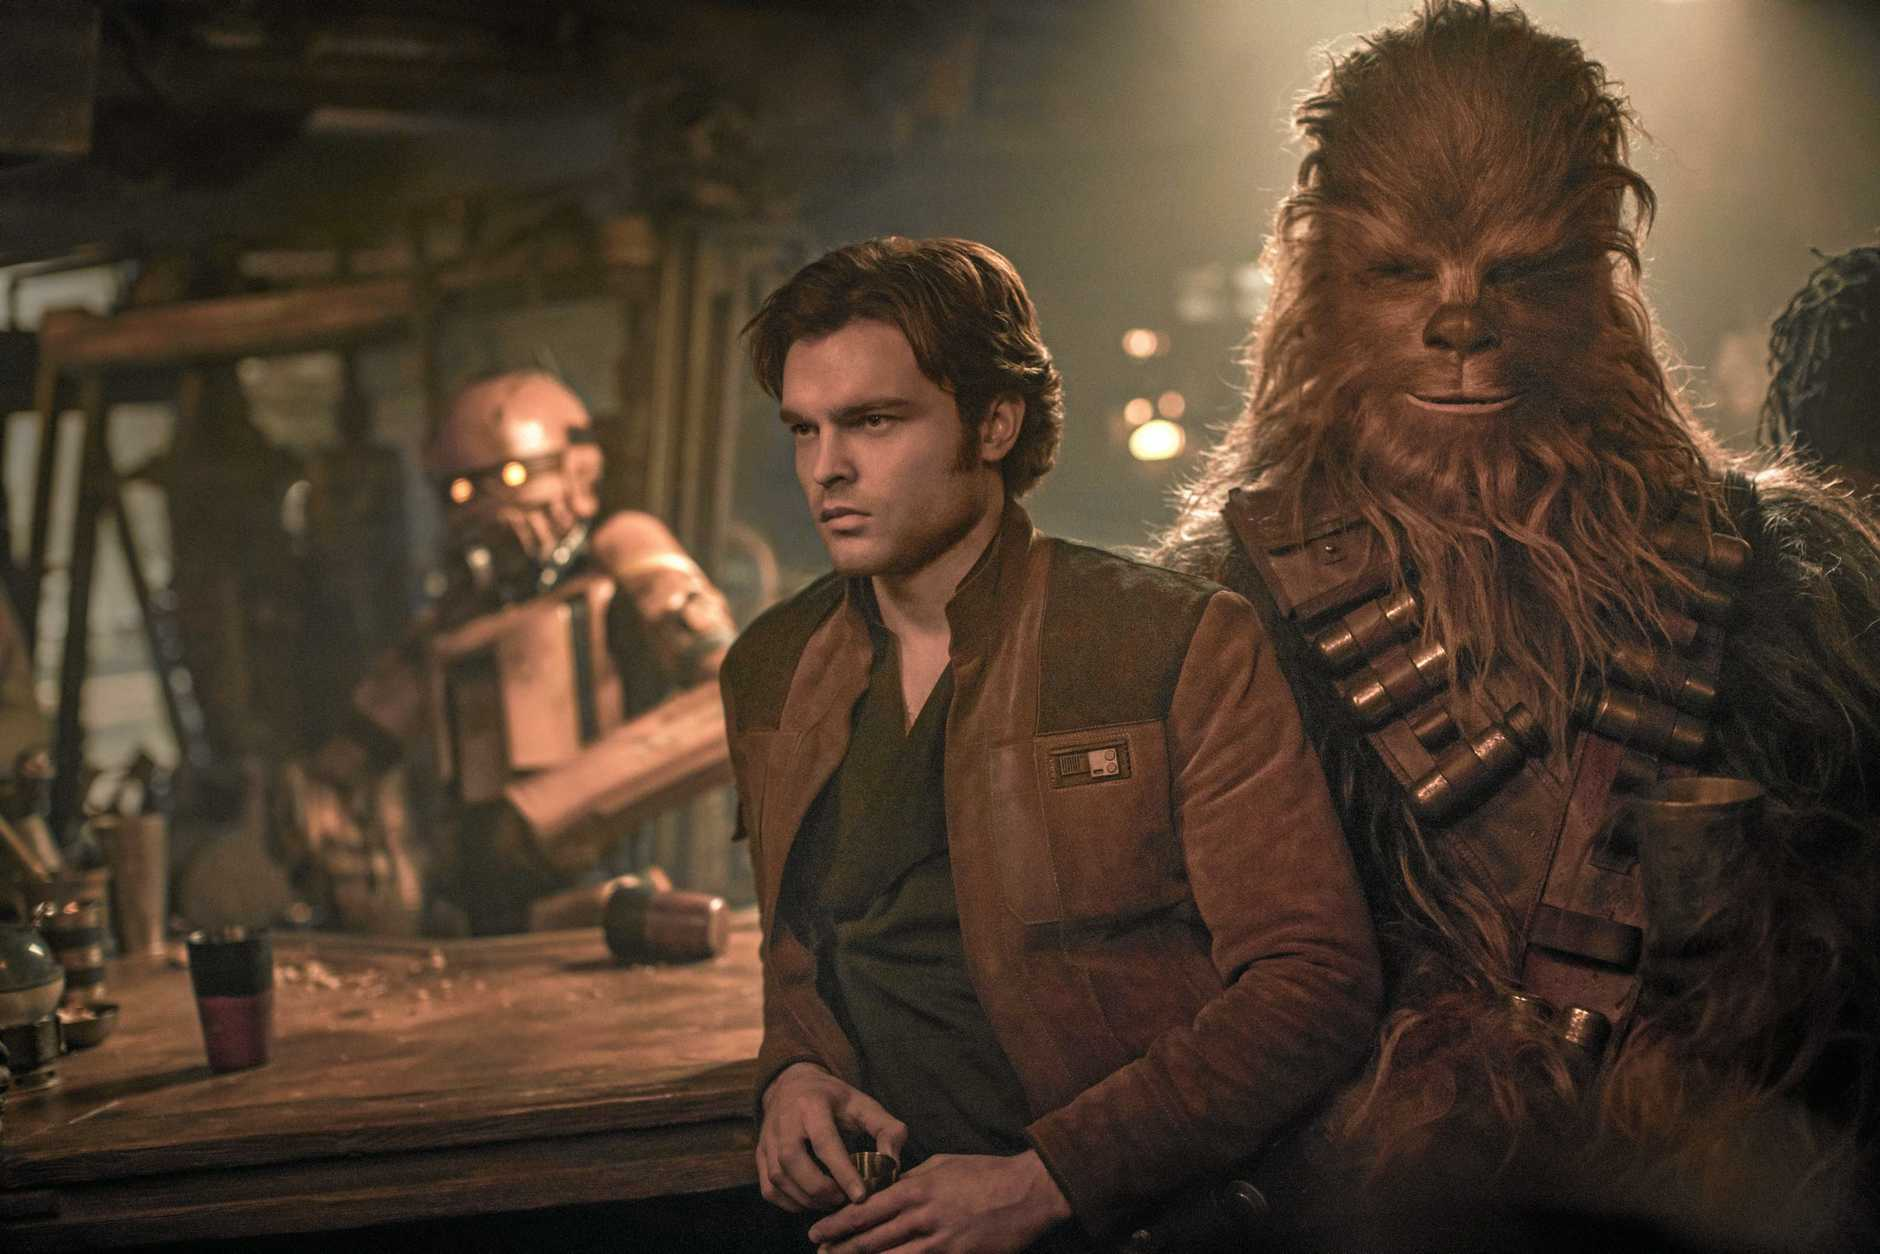 CLASSIC CHARACTERS: Alden Ehrenreich and Joonas Suotamo fill the roles of Han Solo and Chewbacca in a scene from the movie Solo: a Star Wars Story.